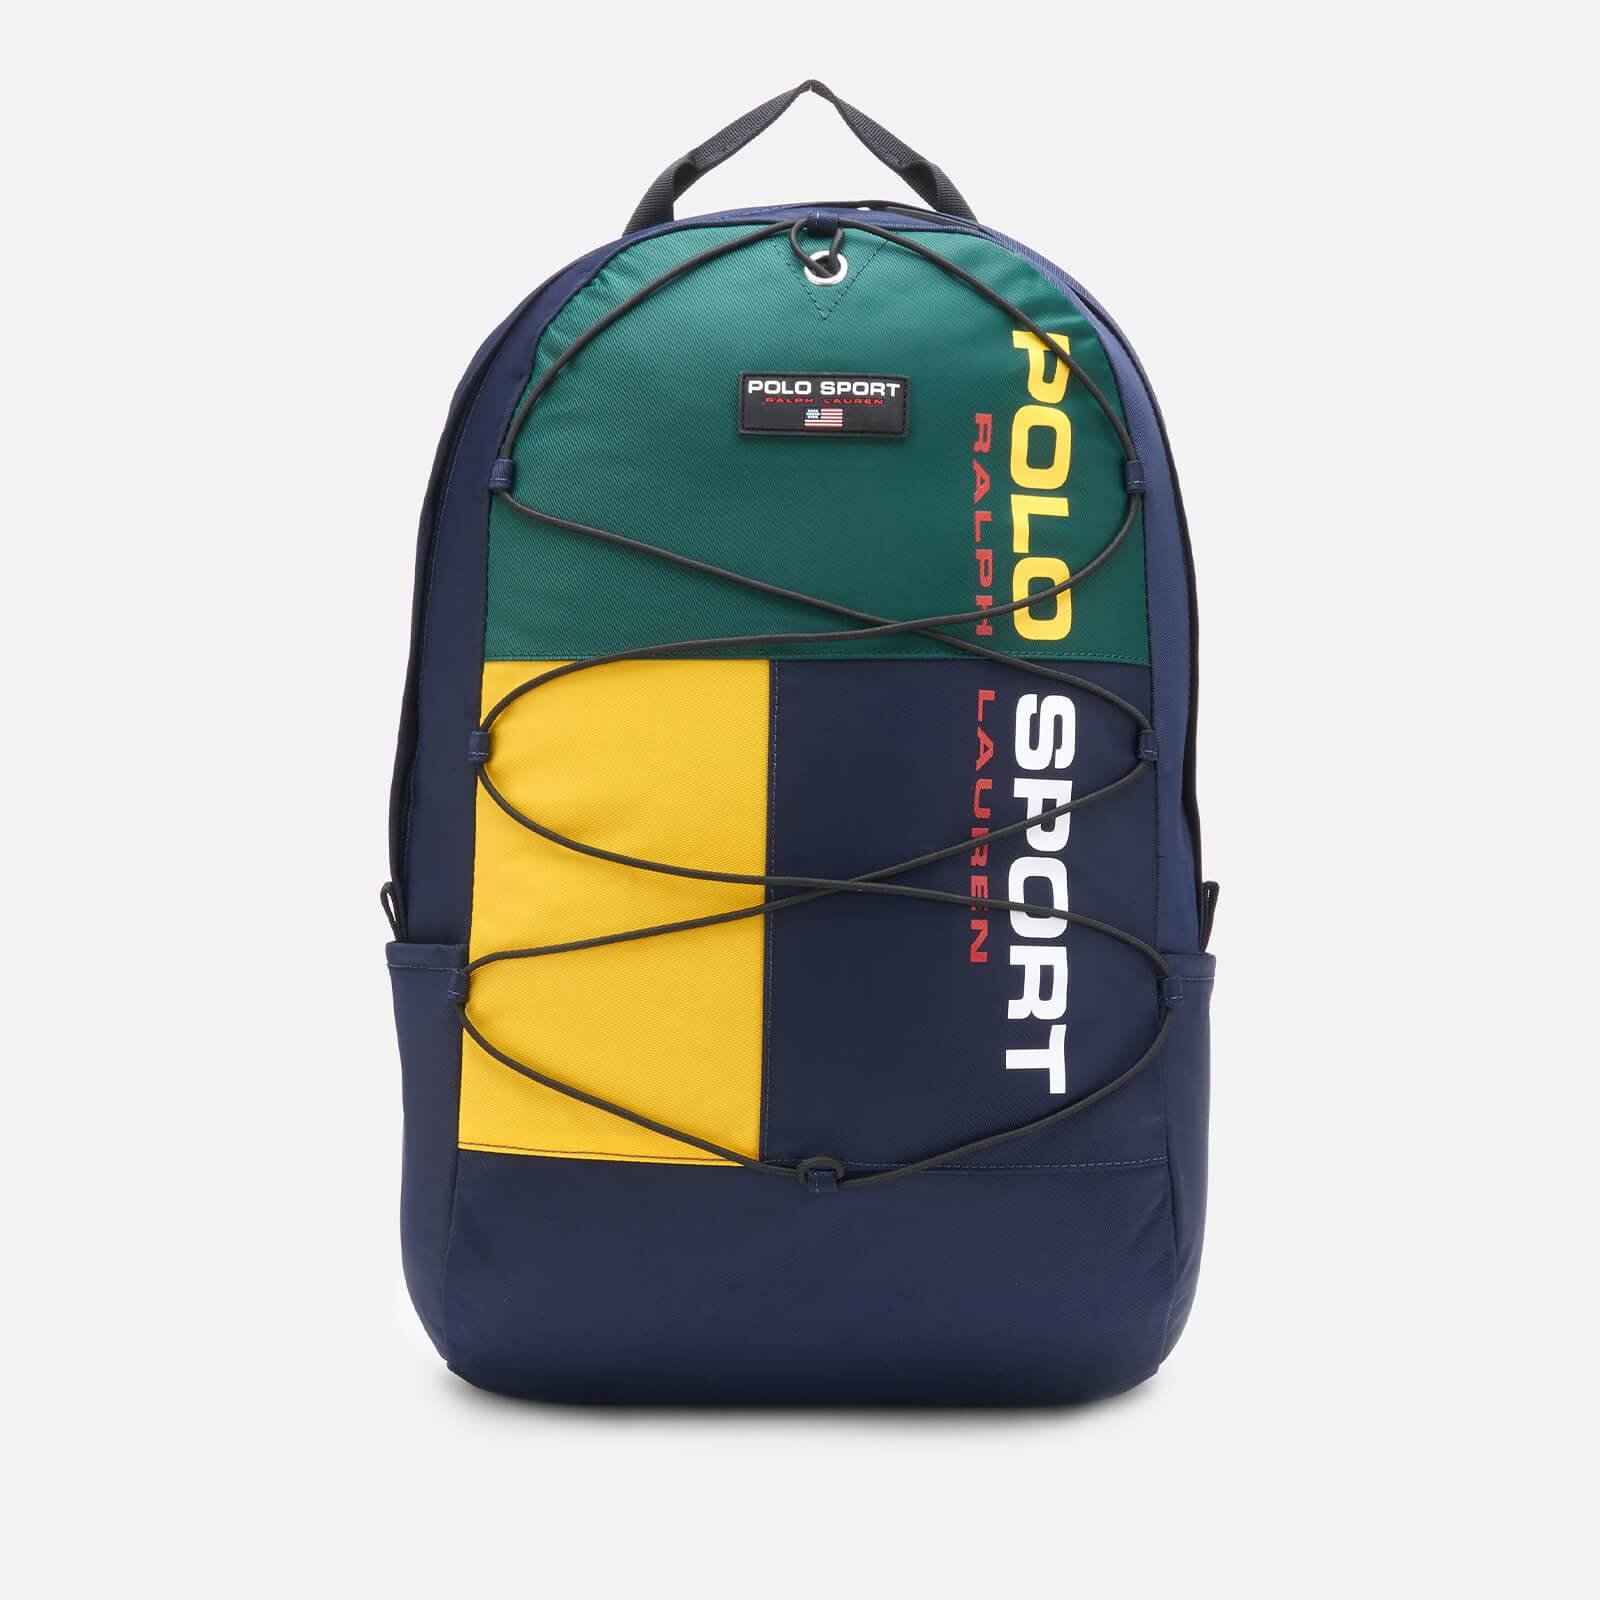 Ralph Lauren Polo Ralph Lauren Men's Polo Sport Backpack - Navy/Green/Yellow